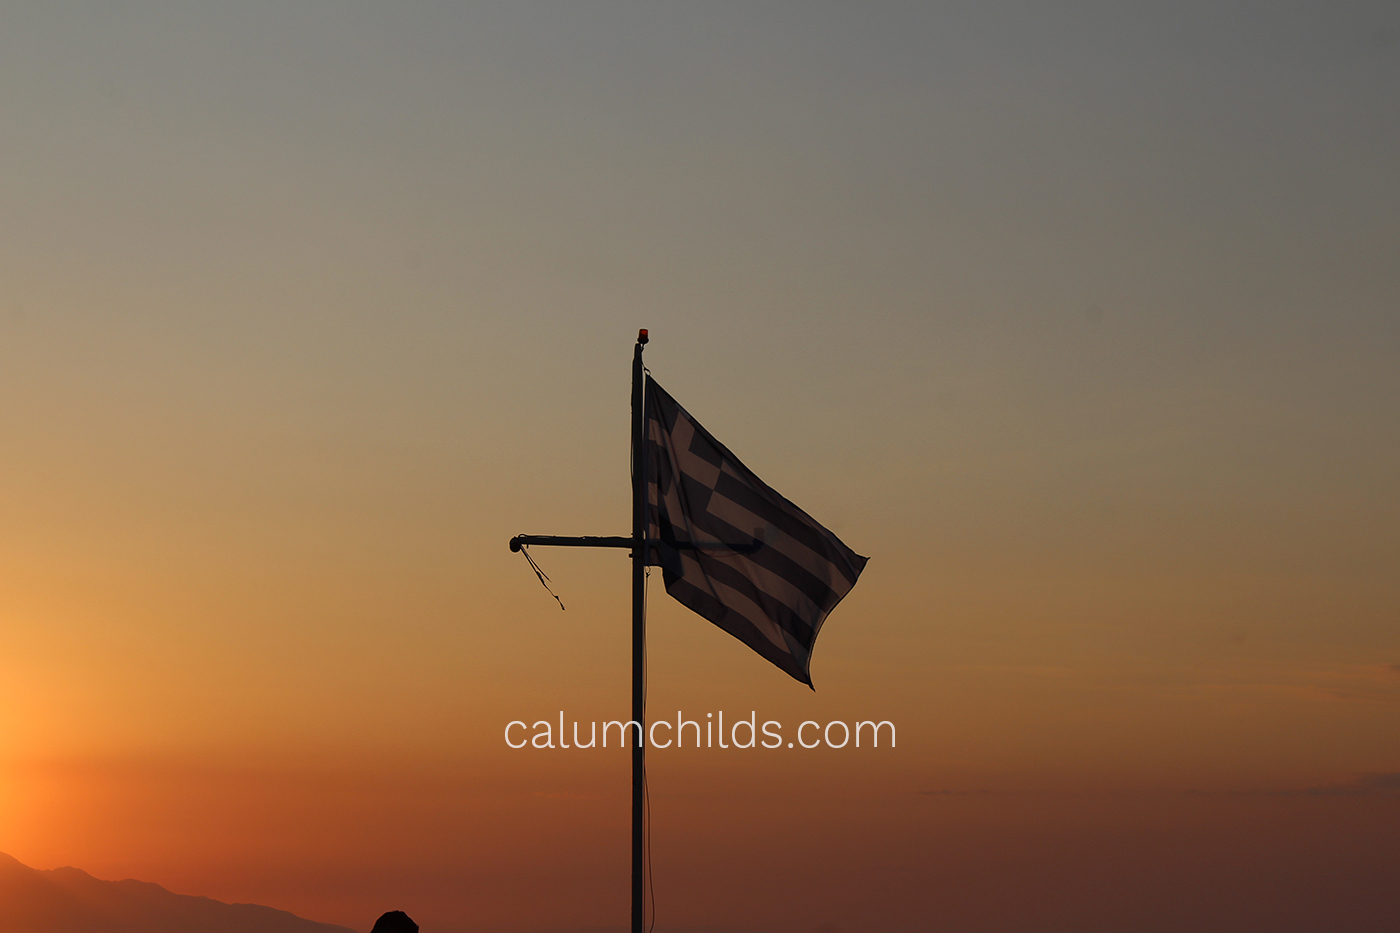 The Greek flag is waving on a white pole, with an blue-orange sunset sky behind it.